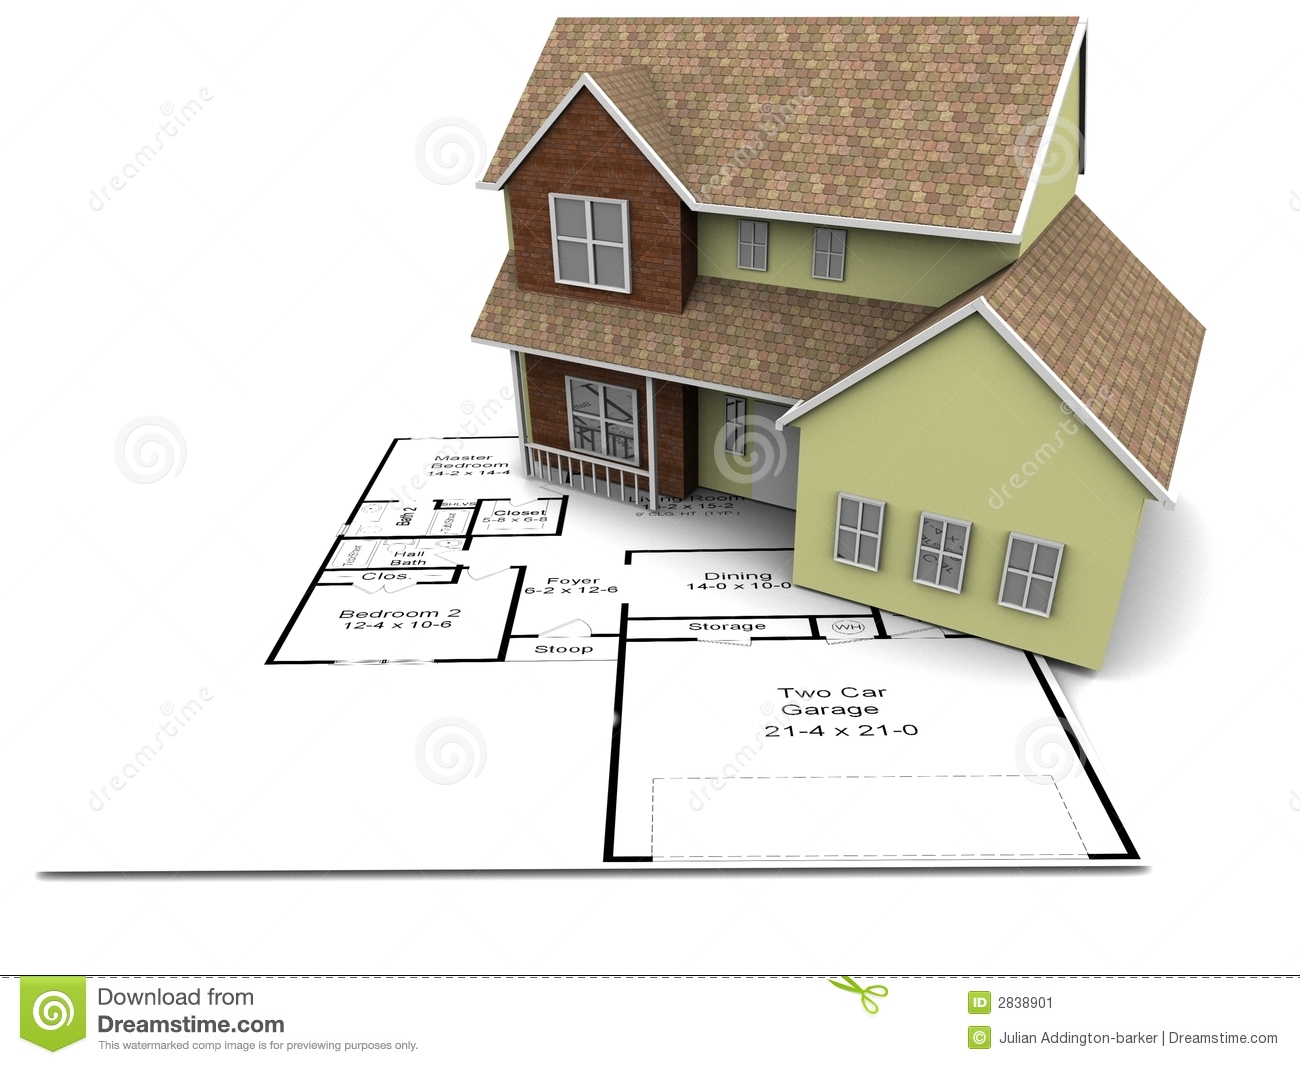 New house plans stock illustration illustration of house New home plans